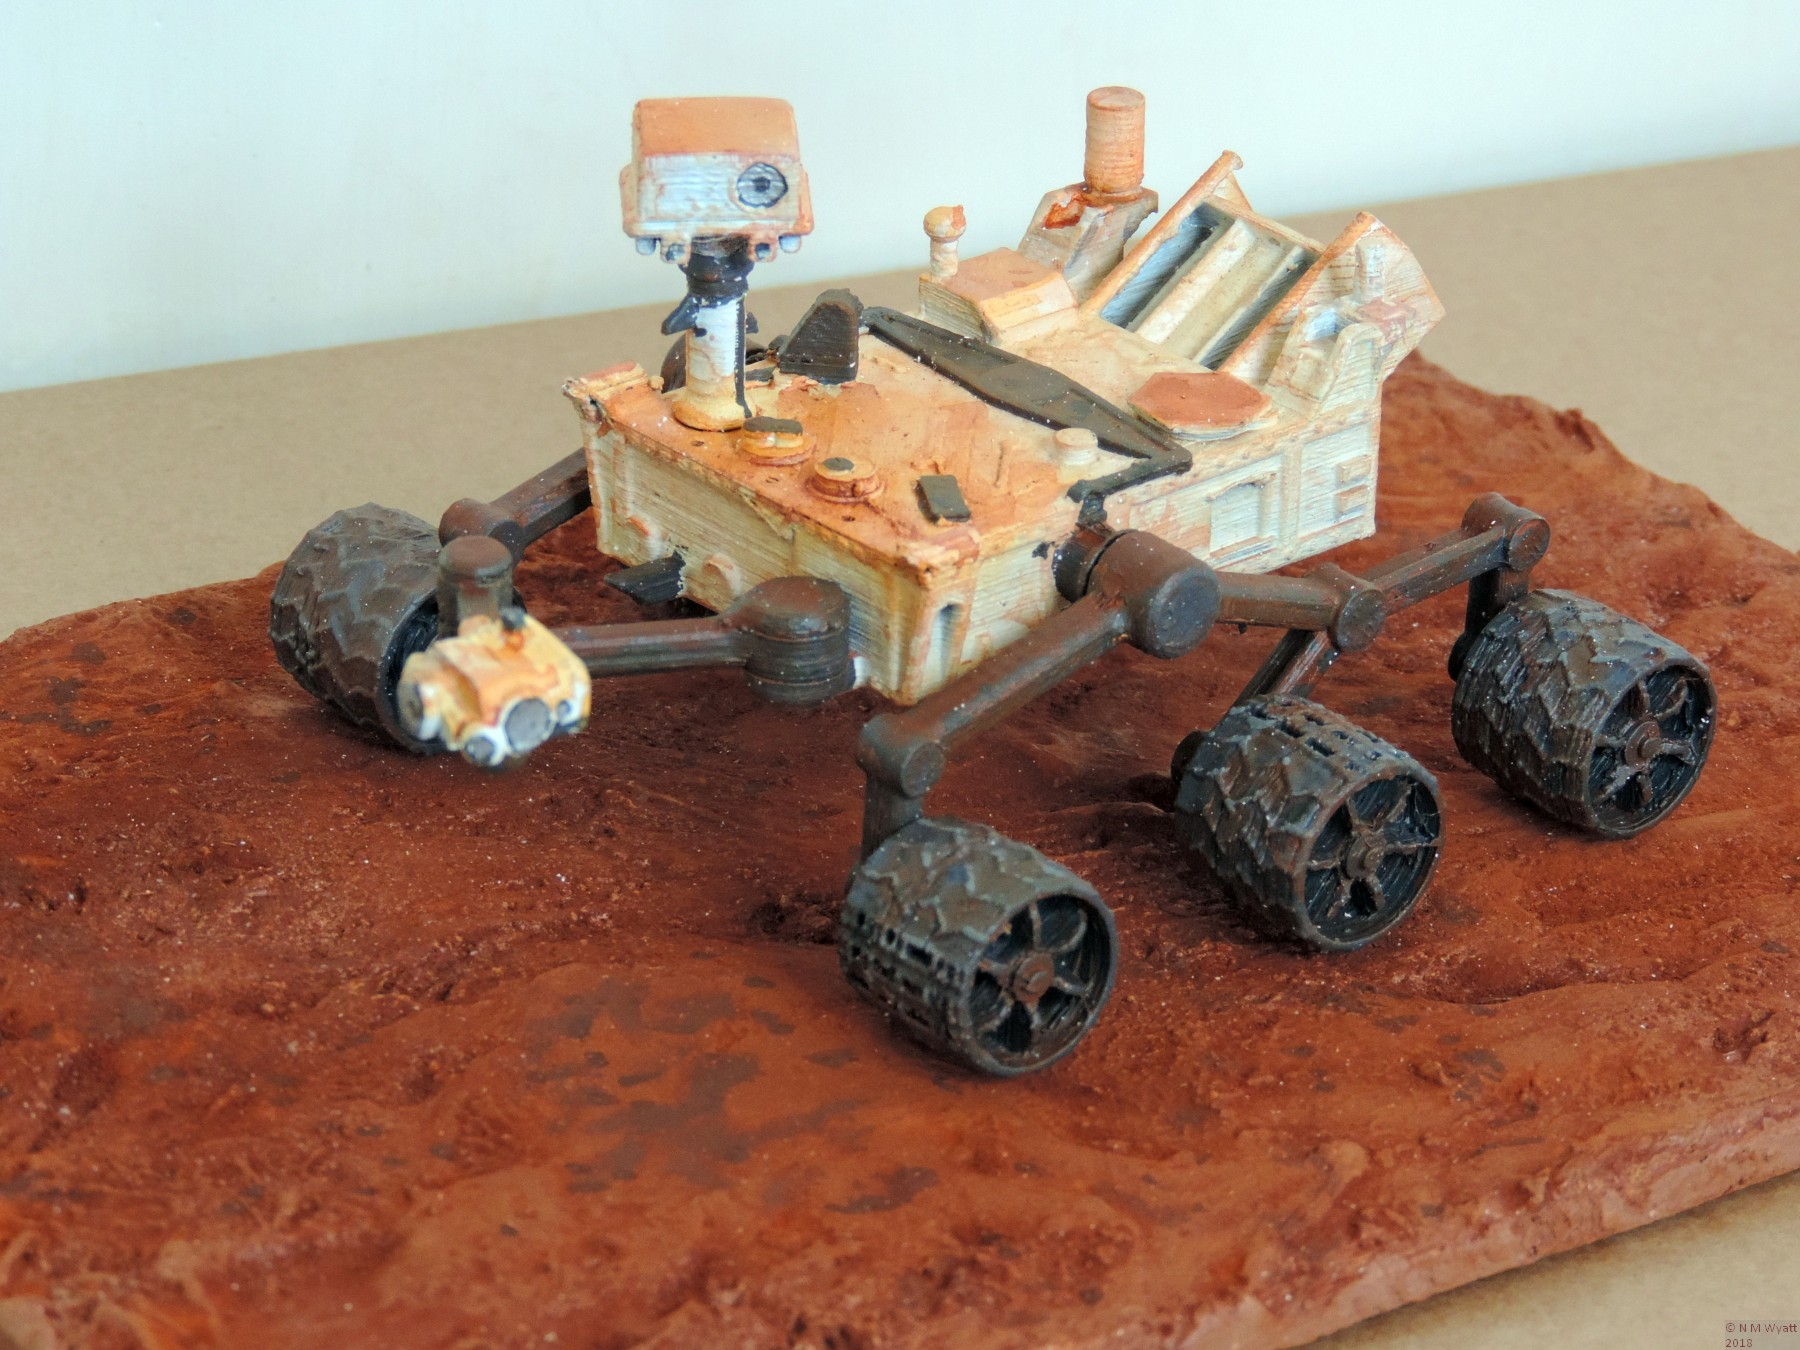 NASA Curiosity Rover £D model with Mars terrain